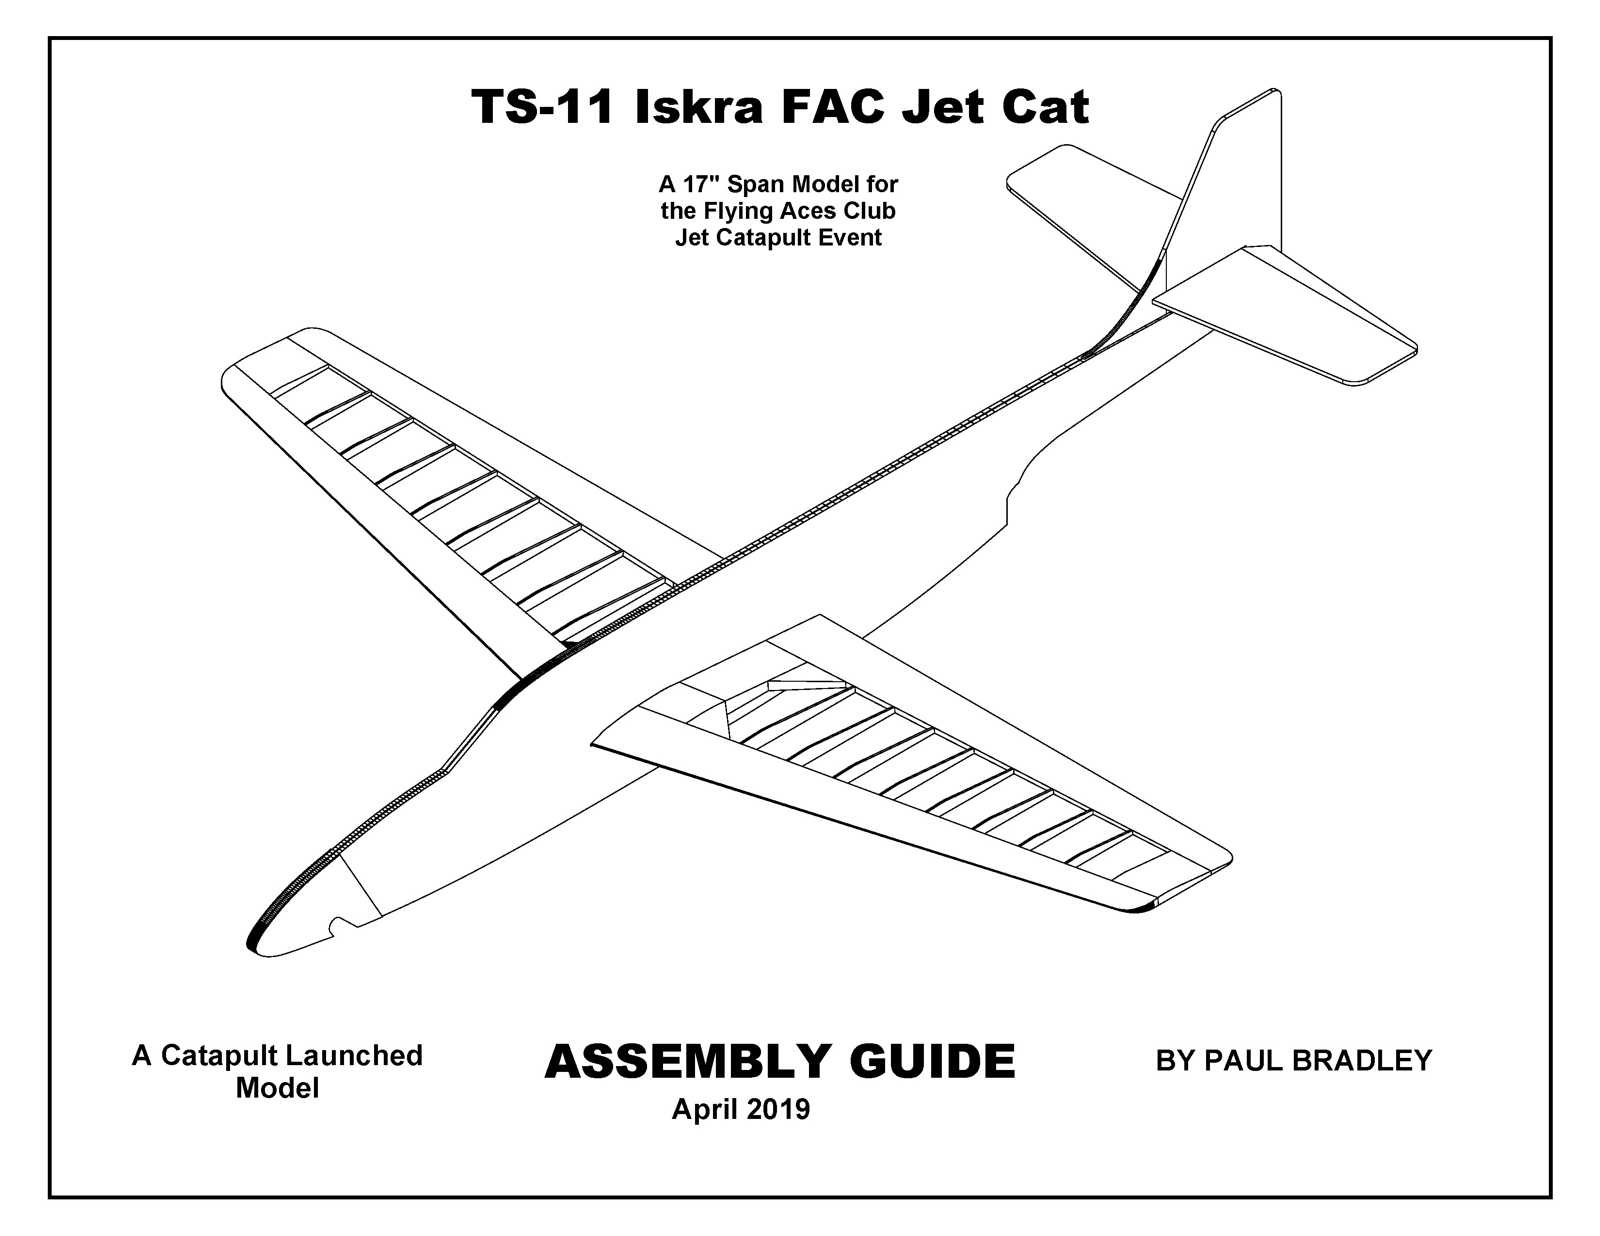 https://0201.nccdn.net/4_2/000/000/03f/ac7/TS-11-Iskra-Jet-Cat-Assembly-Guide-1600x1236.jpg